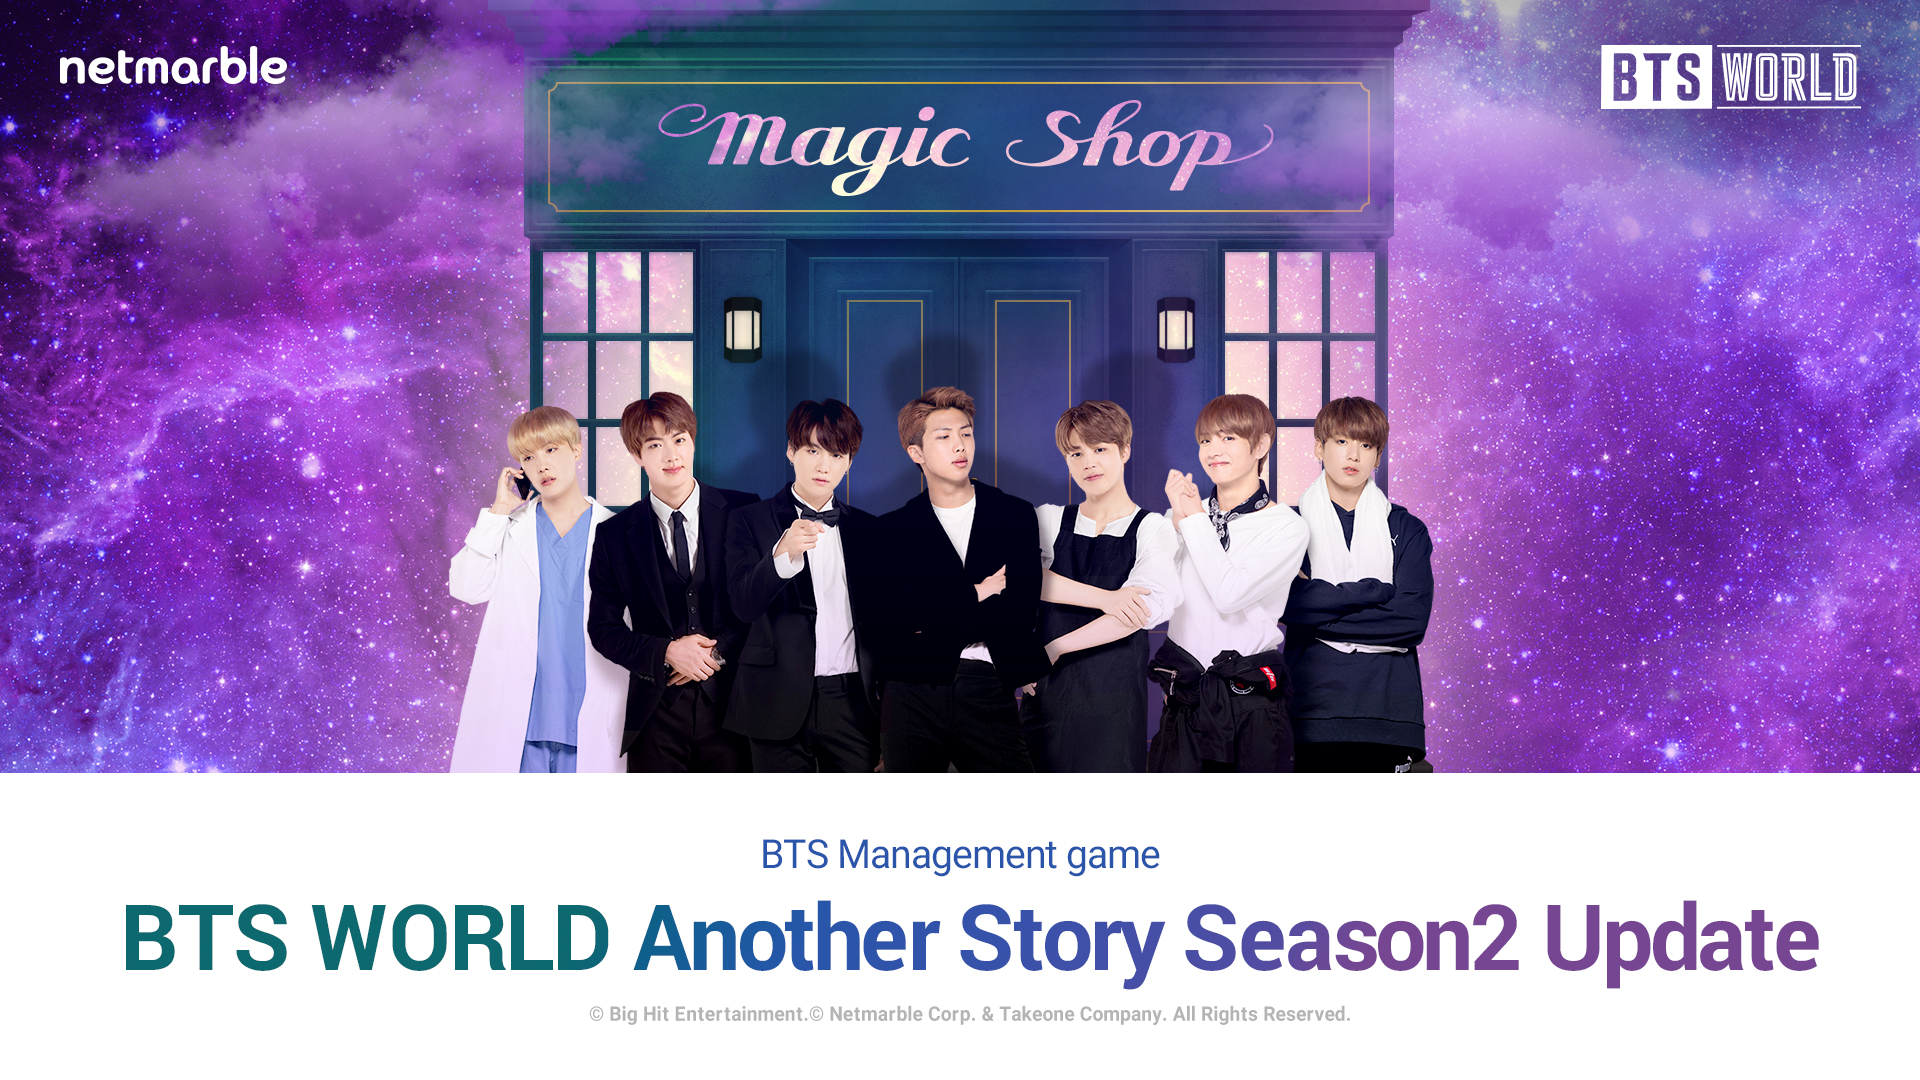 """BTS VISIT THE """"MAGIC SHOP"""" IN MARCH UPDATE  OF BTS WORLD"""